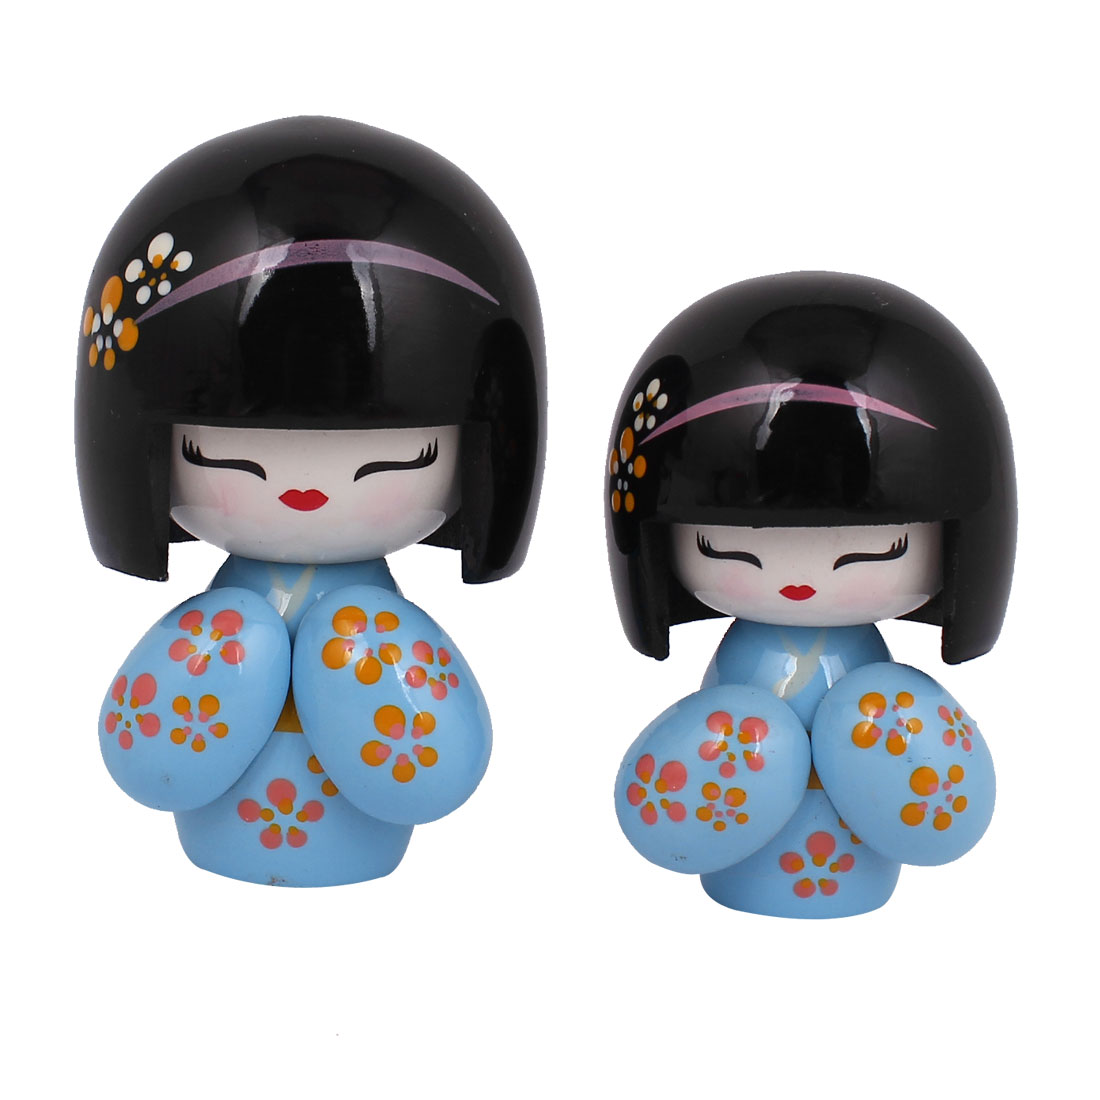 2 in 1 Blue Black Wooden Traditional Japanese Kimono Kokeshi Doll w Carved Floral Decor